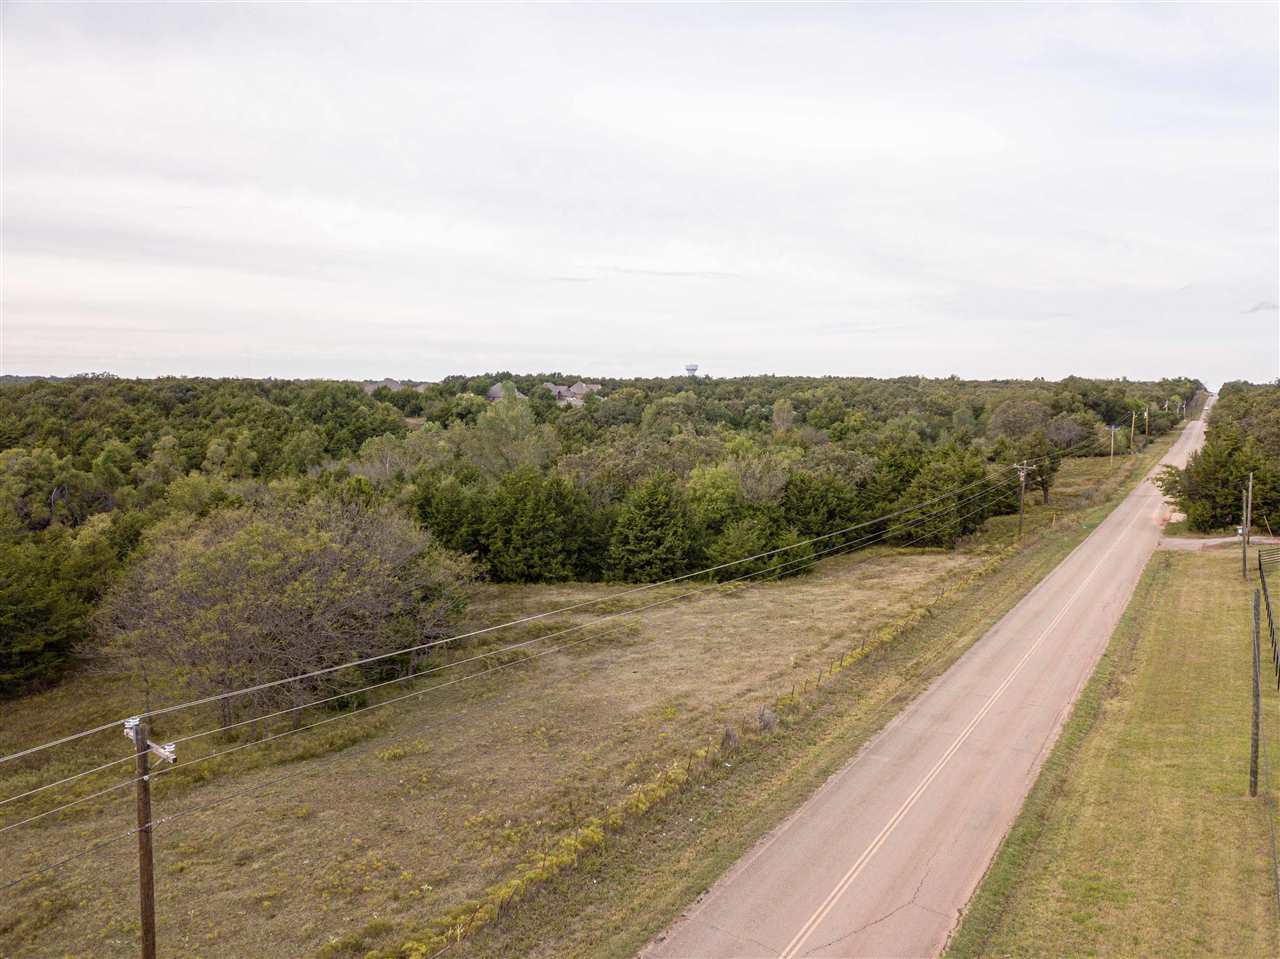 Location, location, location. This fantastic 32.17 acres now available with endless possibilities for this piece of land and pave road access in SW Stillwater. Whether you want to build, have a place for cattle/horses or just enjoy having land, do not miss your opportunity. This property is located on S Country Club Road, between 44th and 56th, south of Red Rose Valley. Stillwater Schools District. The property has already been surveyed with pins set. The land is a combination of pasture land and trees. 5 strand fencing on majority of property. Utilities are along Country Club Road. Call for your private showing today!